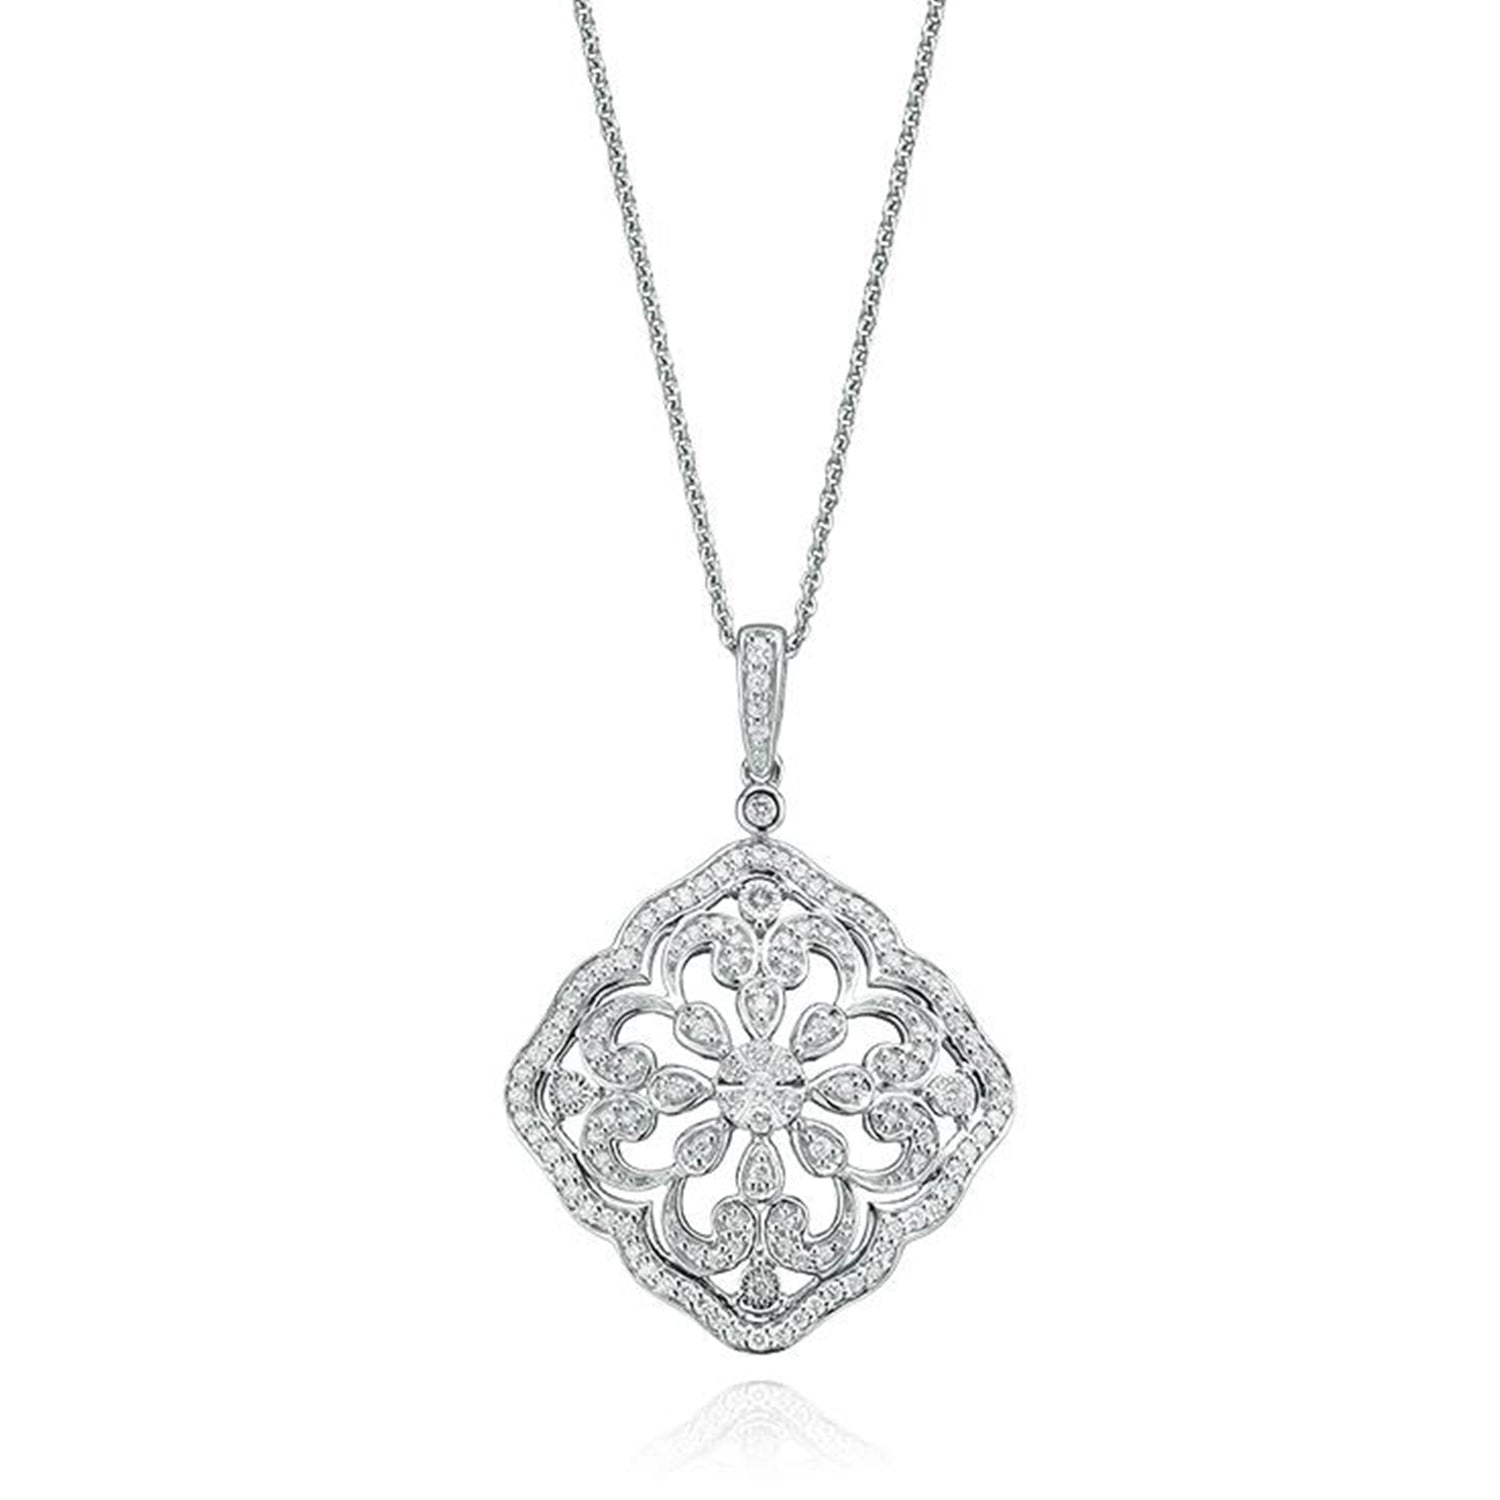 Chandelier Collection 9ct White Gold Round Brilliant Cut with 0.40 CARAT tw of Diamond Pendant